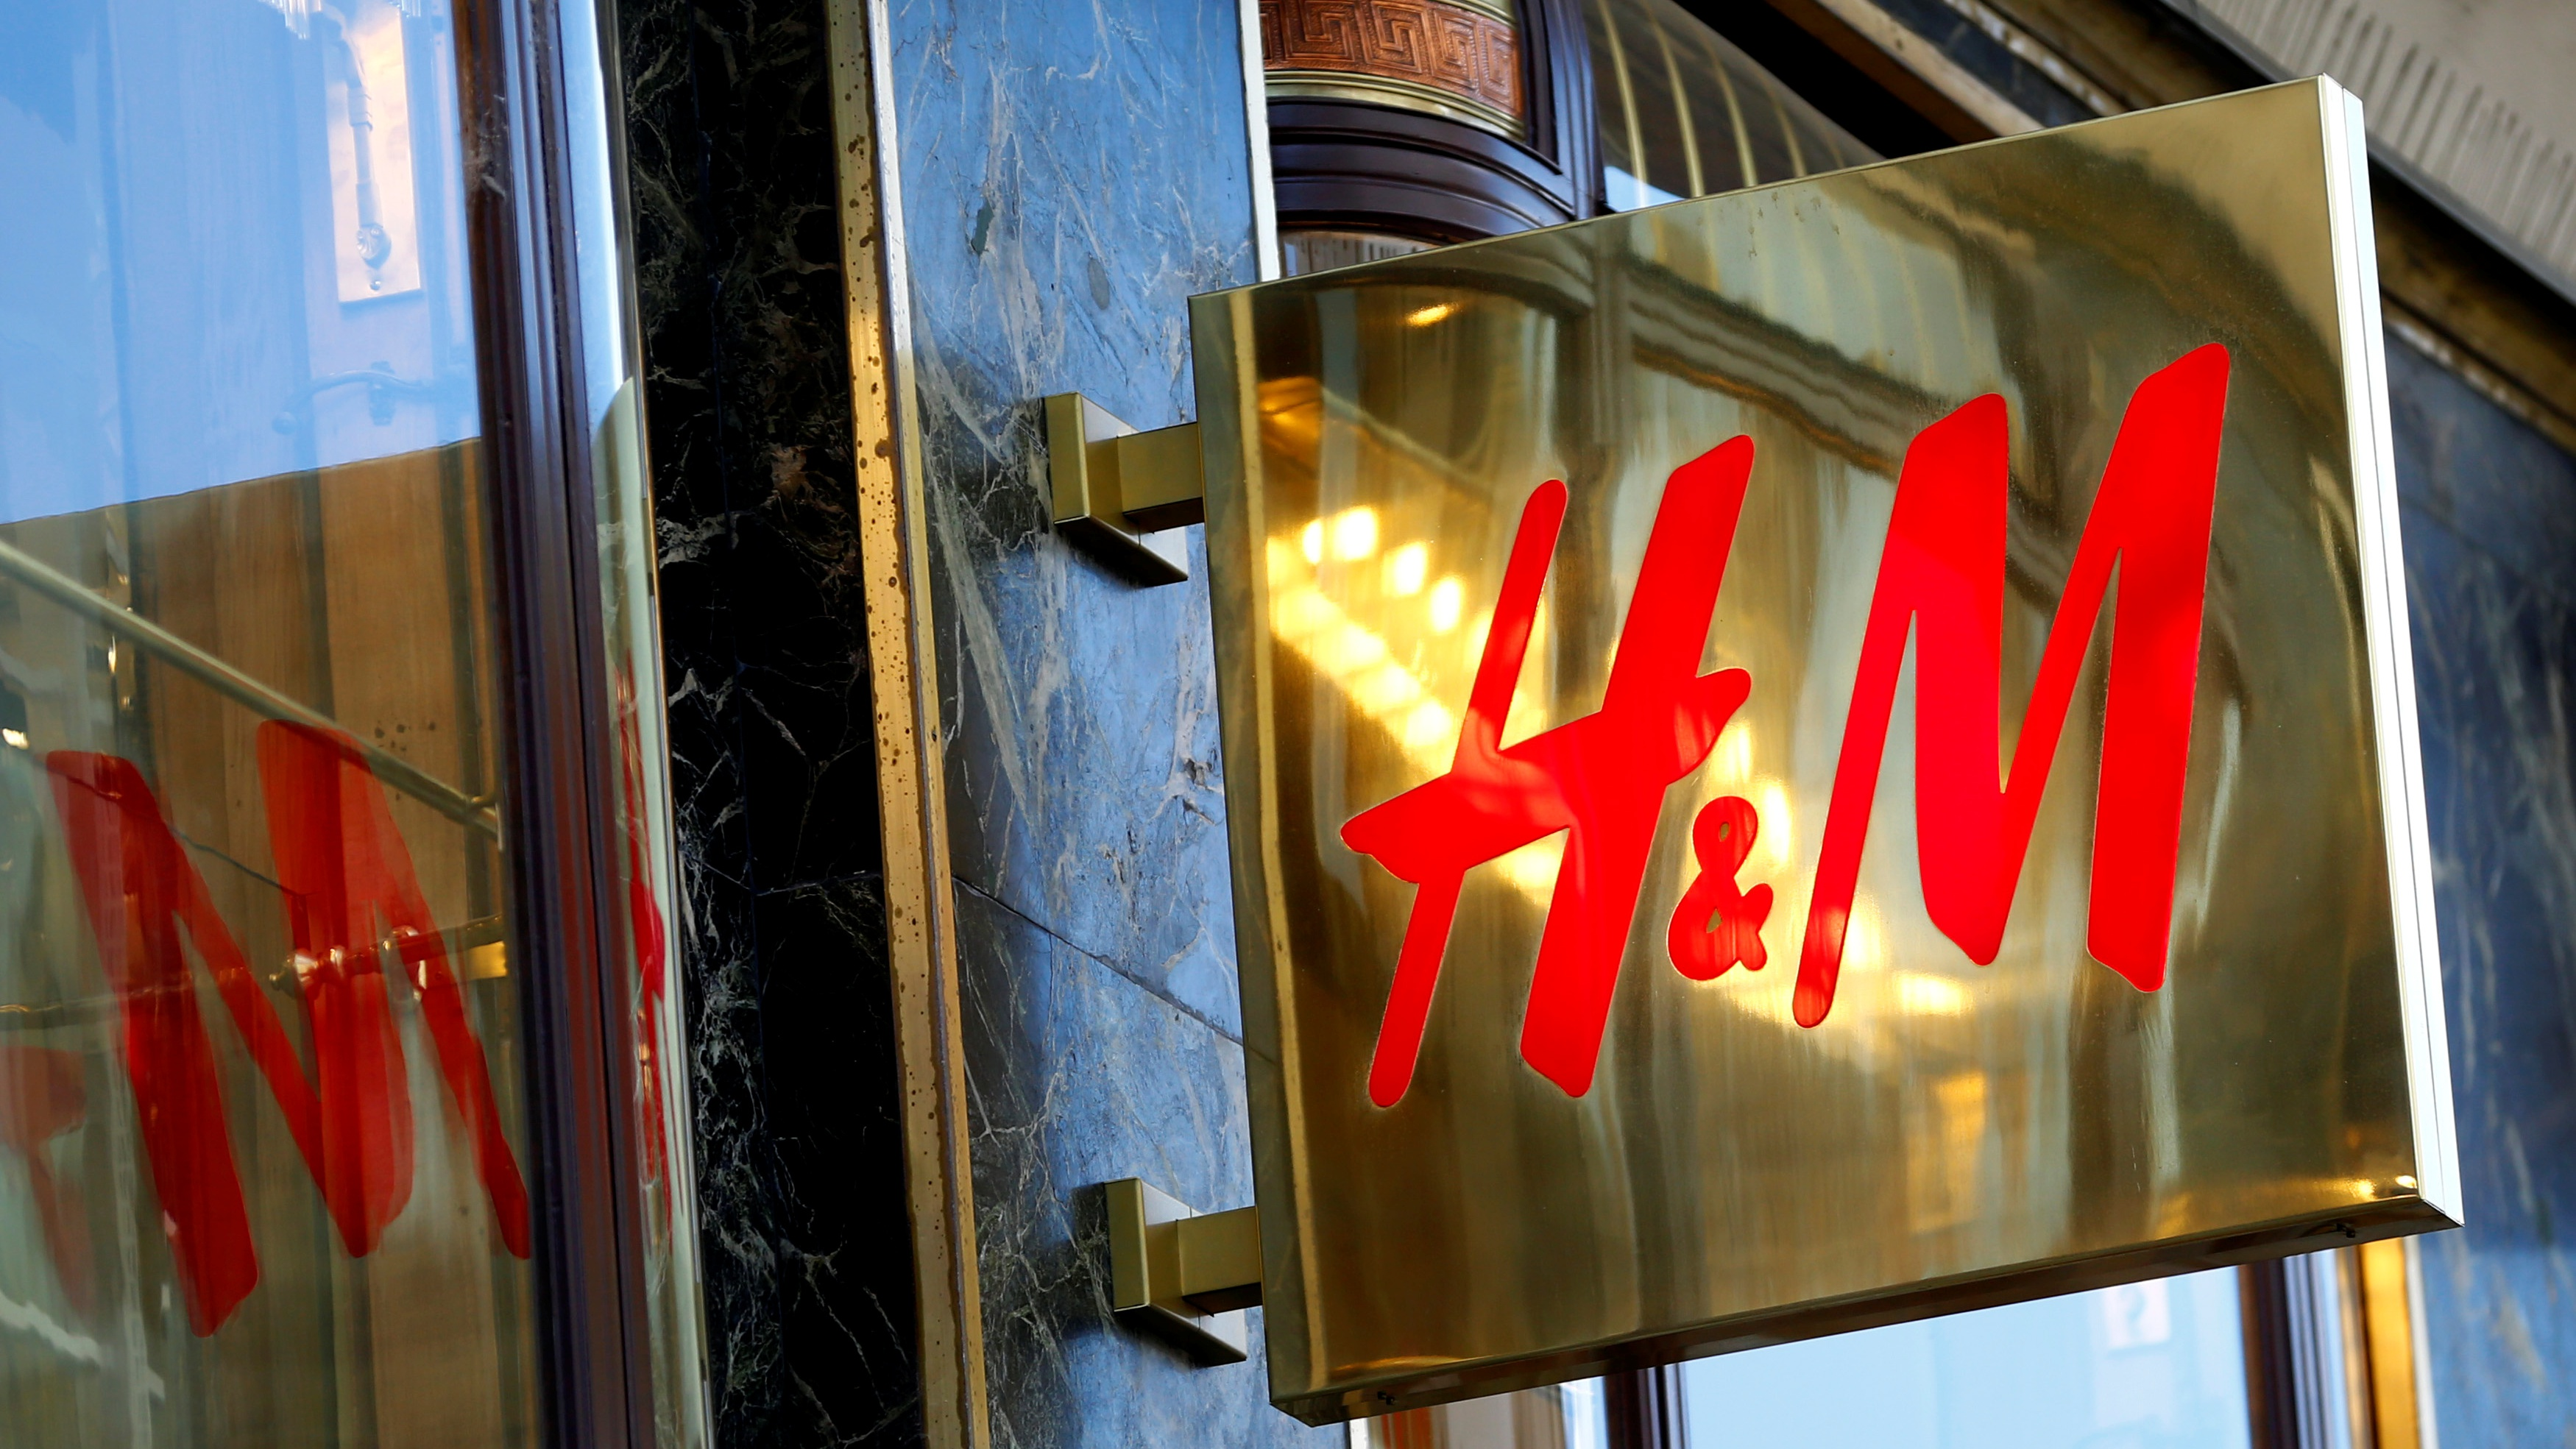 The logo of H&M is seen outside a store in Vienna, Austria, June 21, 2016. REUTERS/Leonhard Foeger